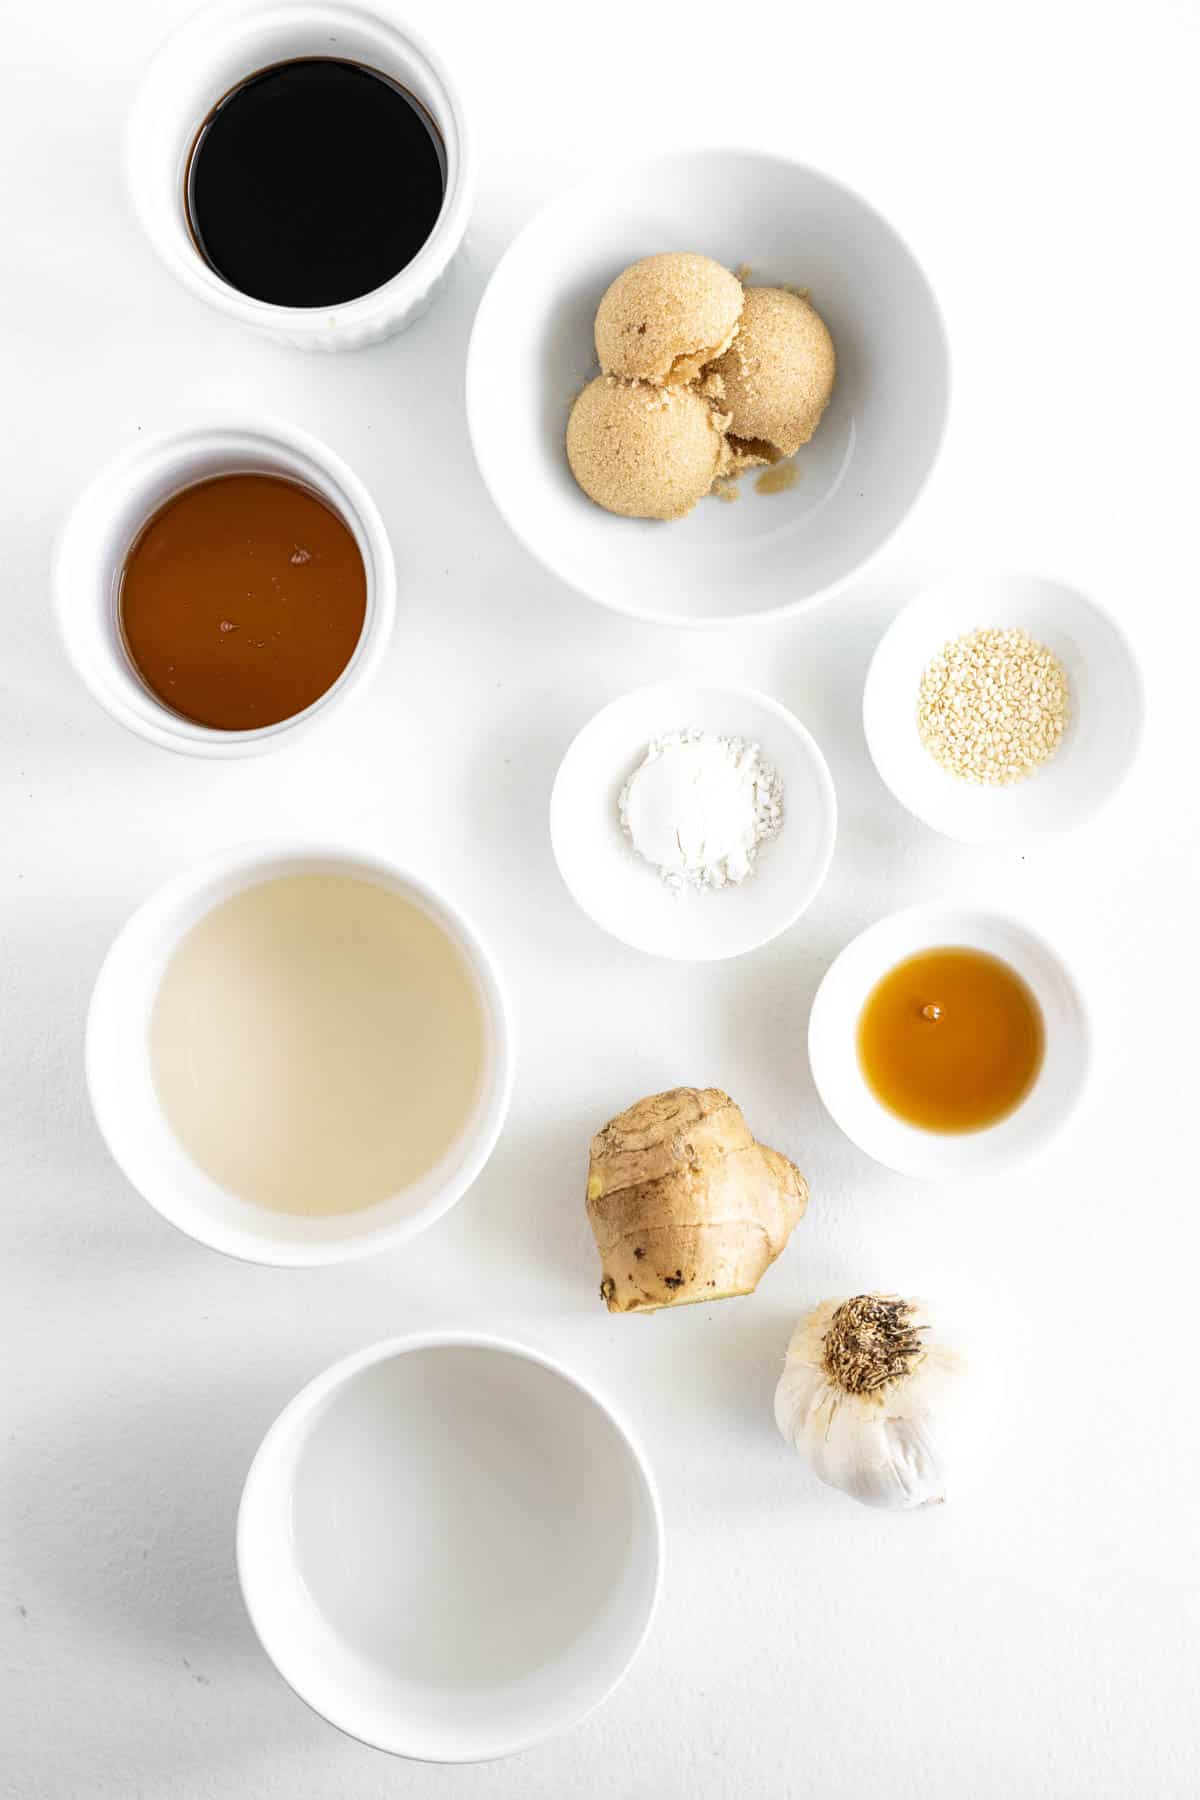 ingredients for gluten-free teriyaki sauce in small bowls, including soy sauce, brown sugar, honey and ginger